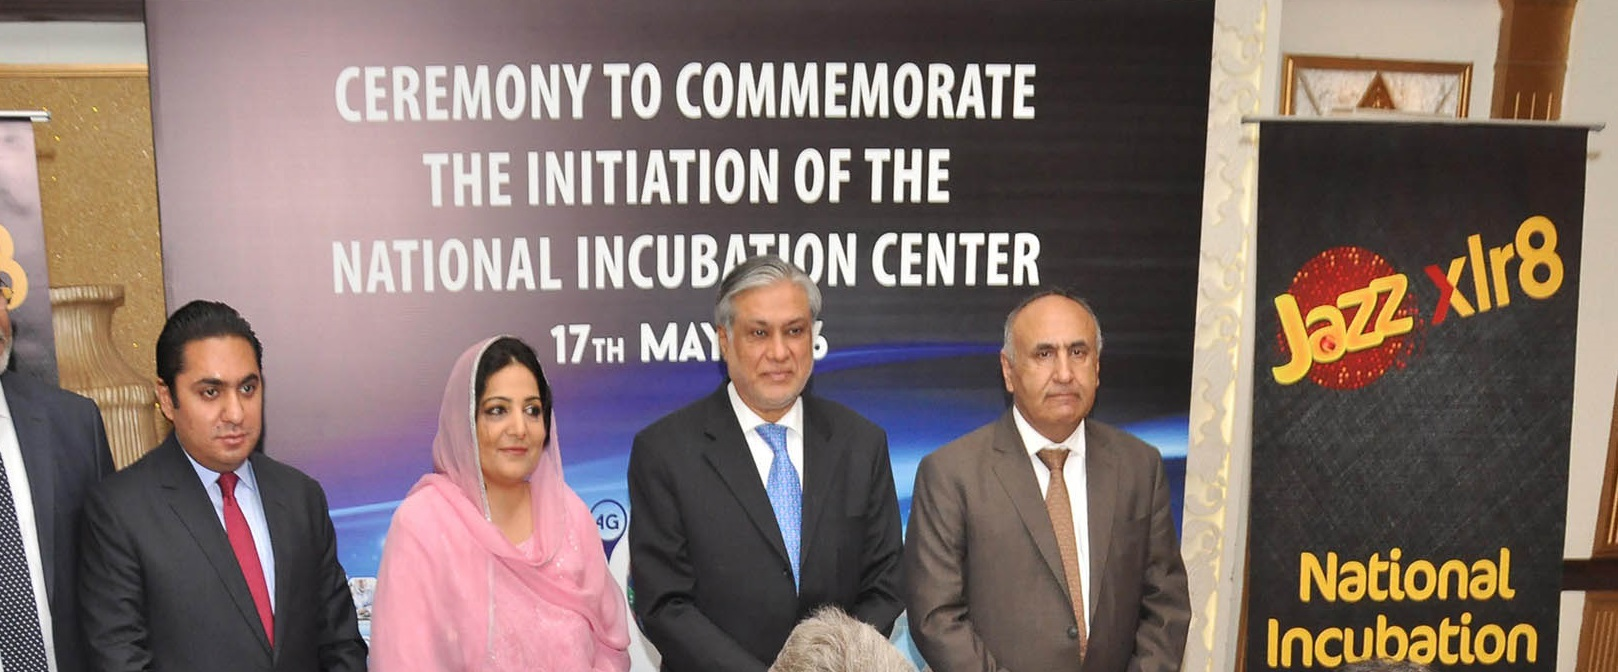 #Mobilink, #Mobilink Signed MoU With ICT R&D Fund, Mobilink to Launch National Incubator Center